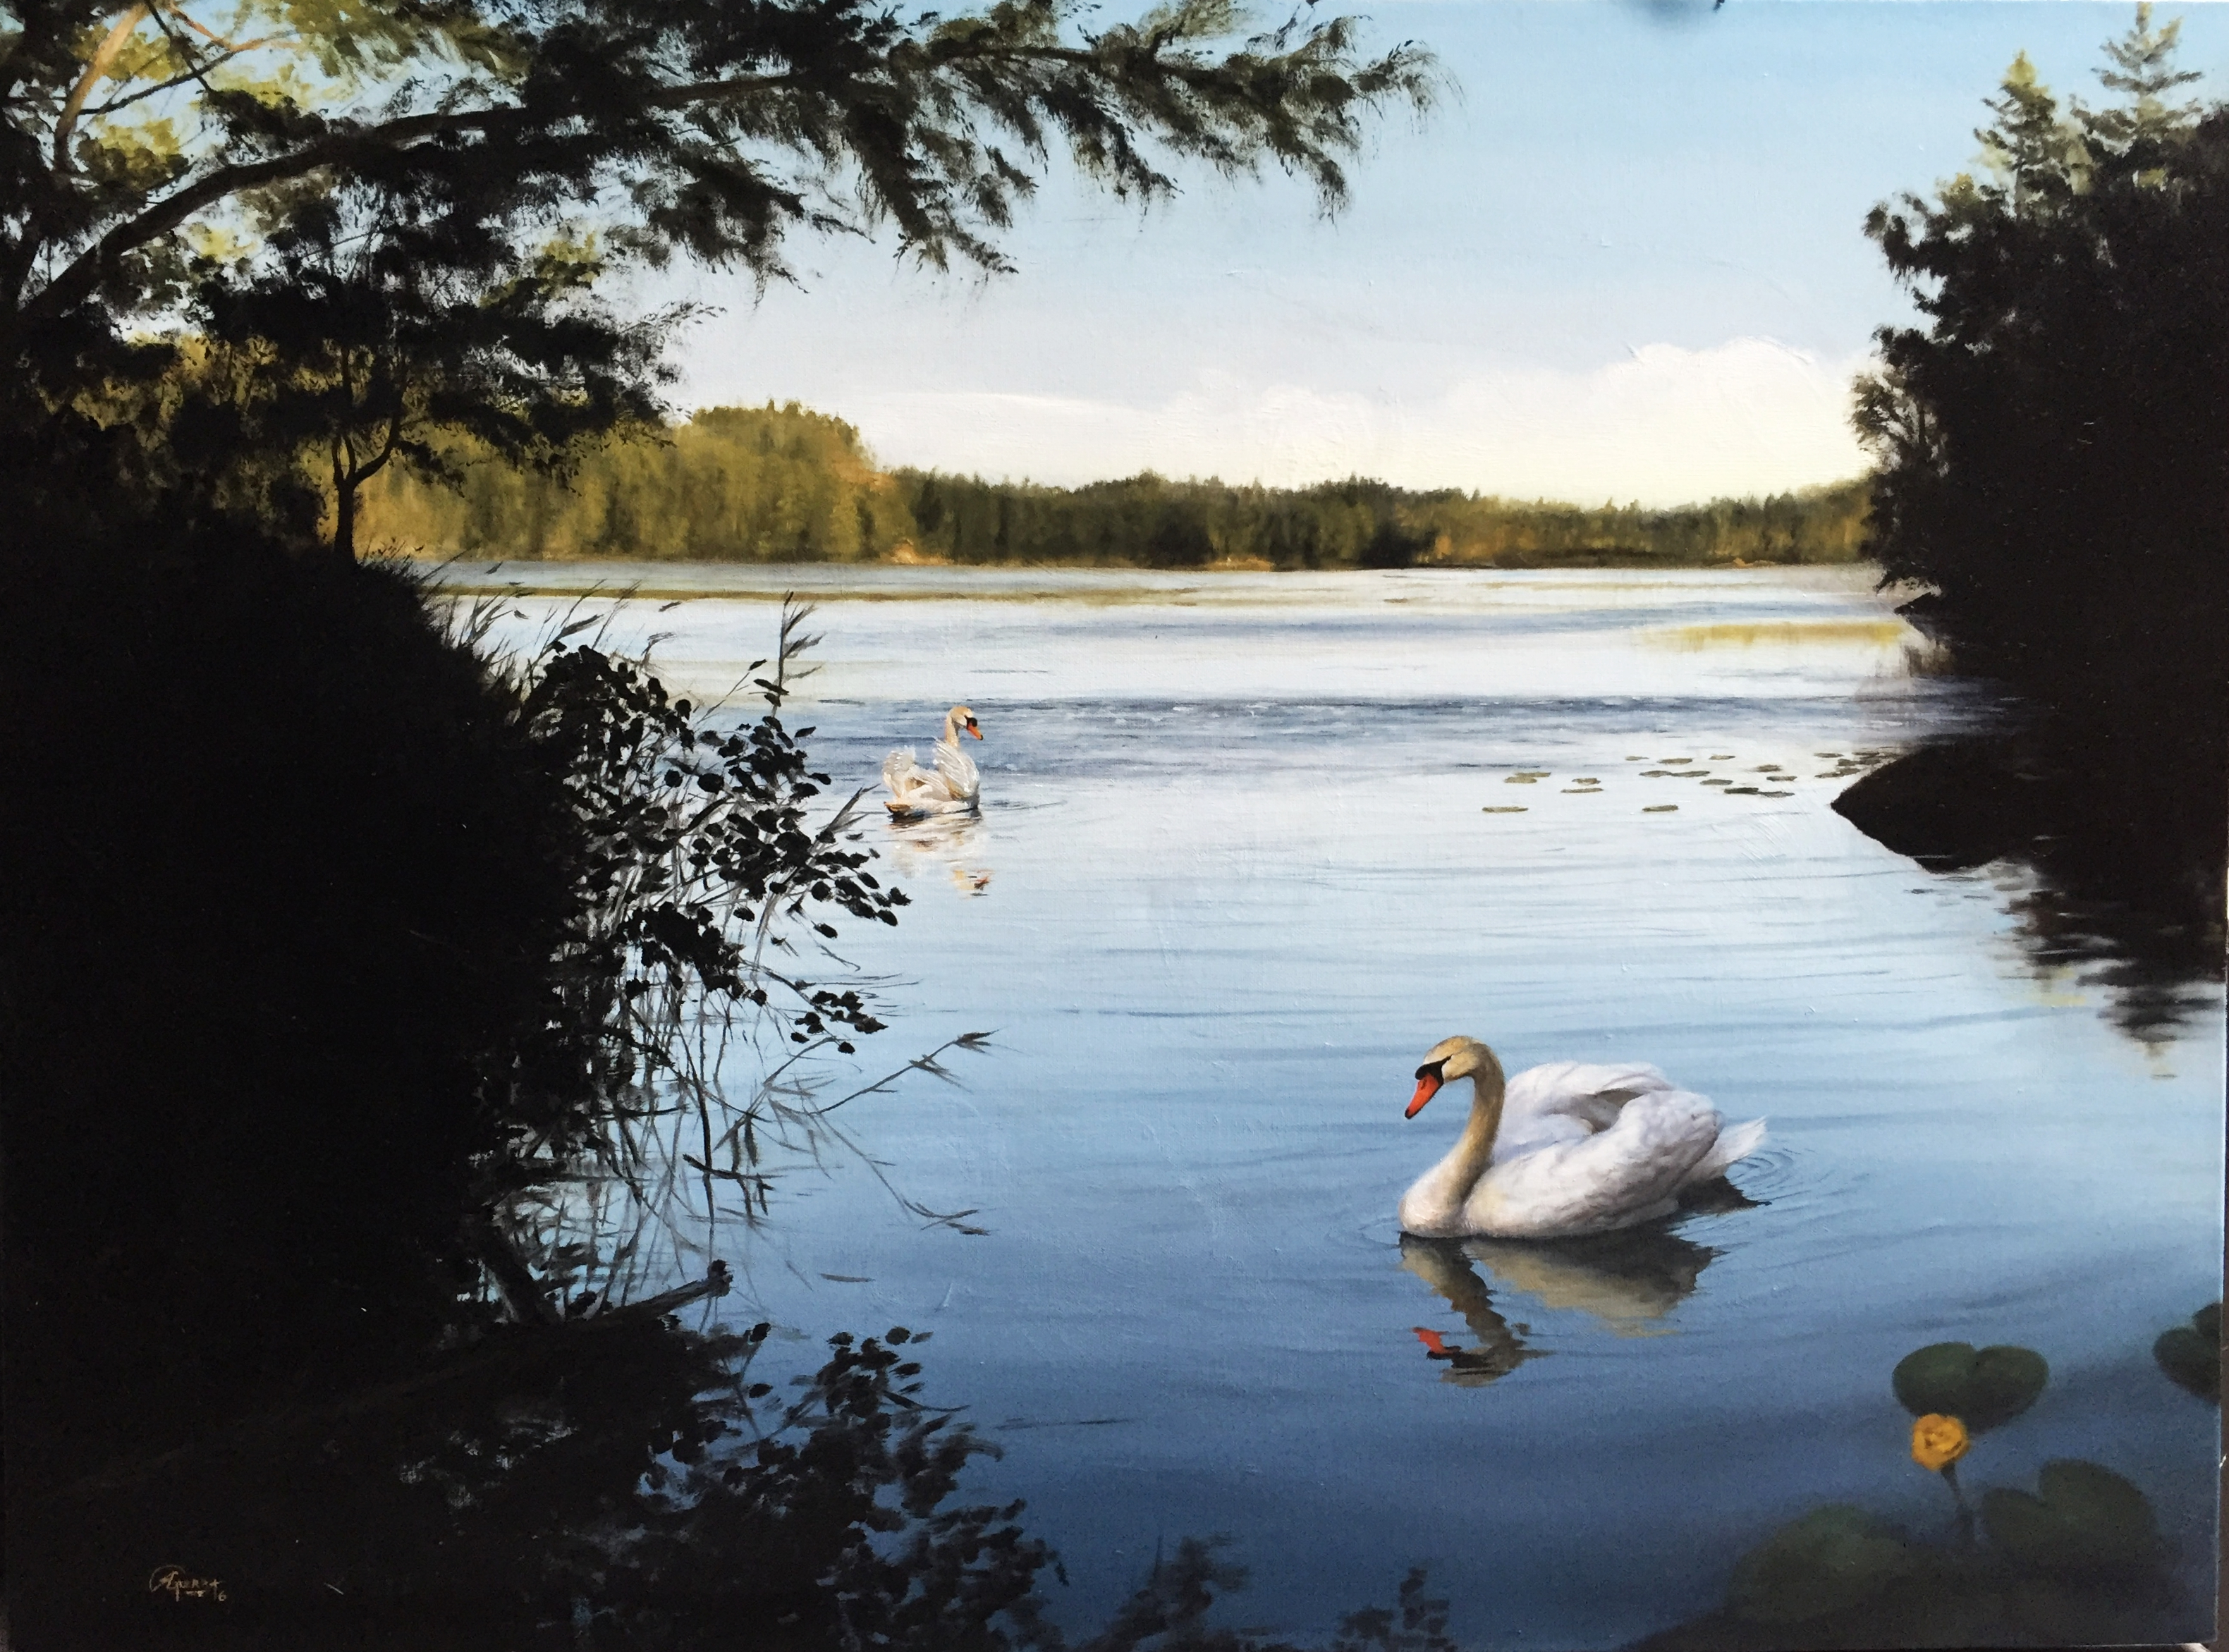 Swans on a Lake in Finland 2